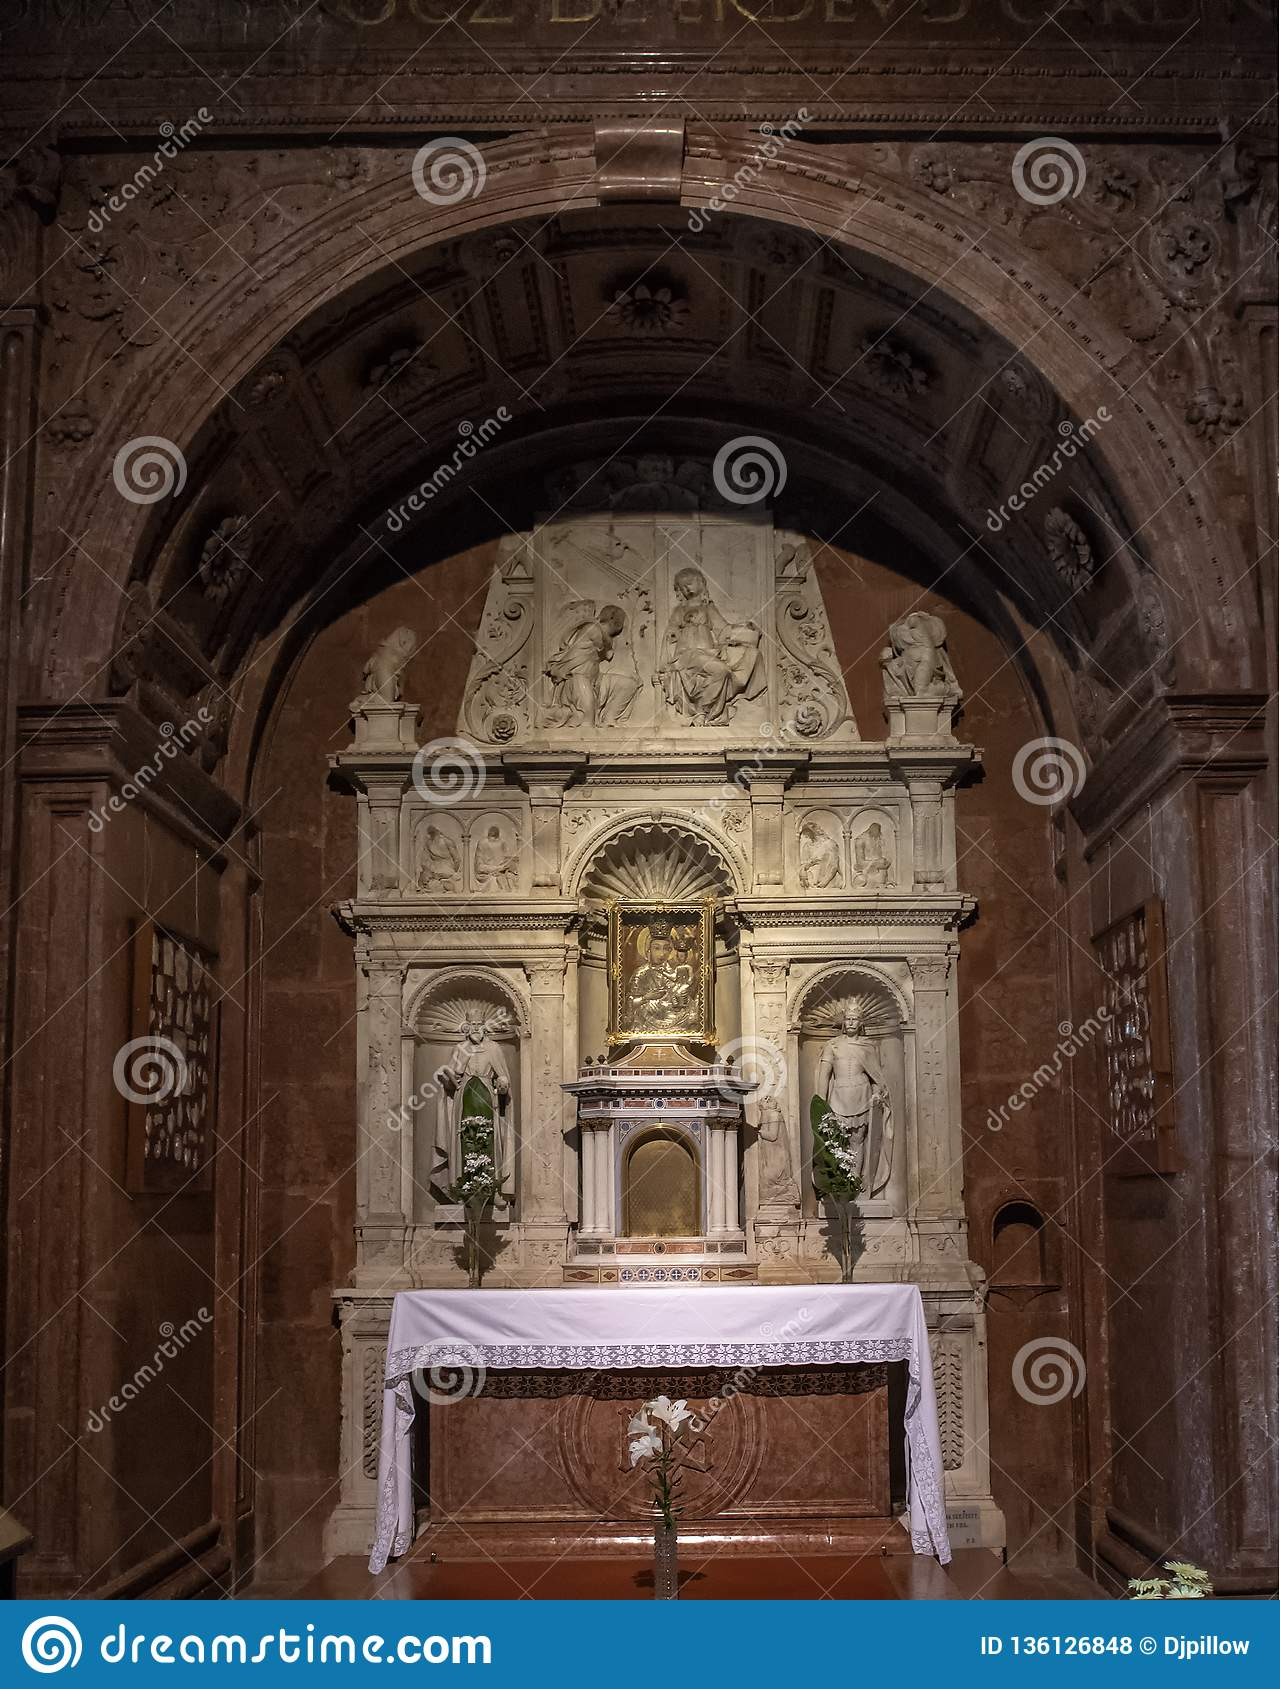 Altar dedicated to the Blessed Virgin Mary and the infant Jesus inside the Esztergom Basilica, Esztergom, Hungary